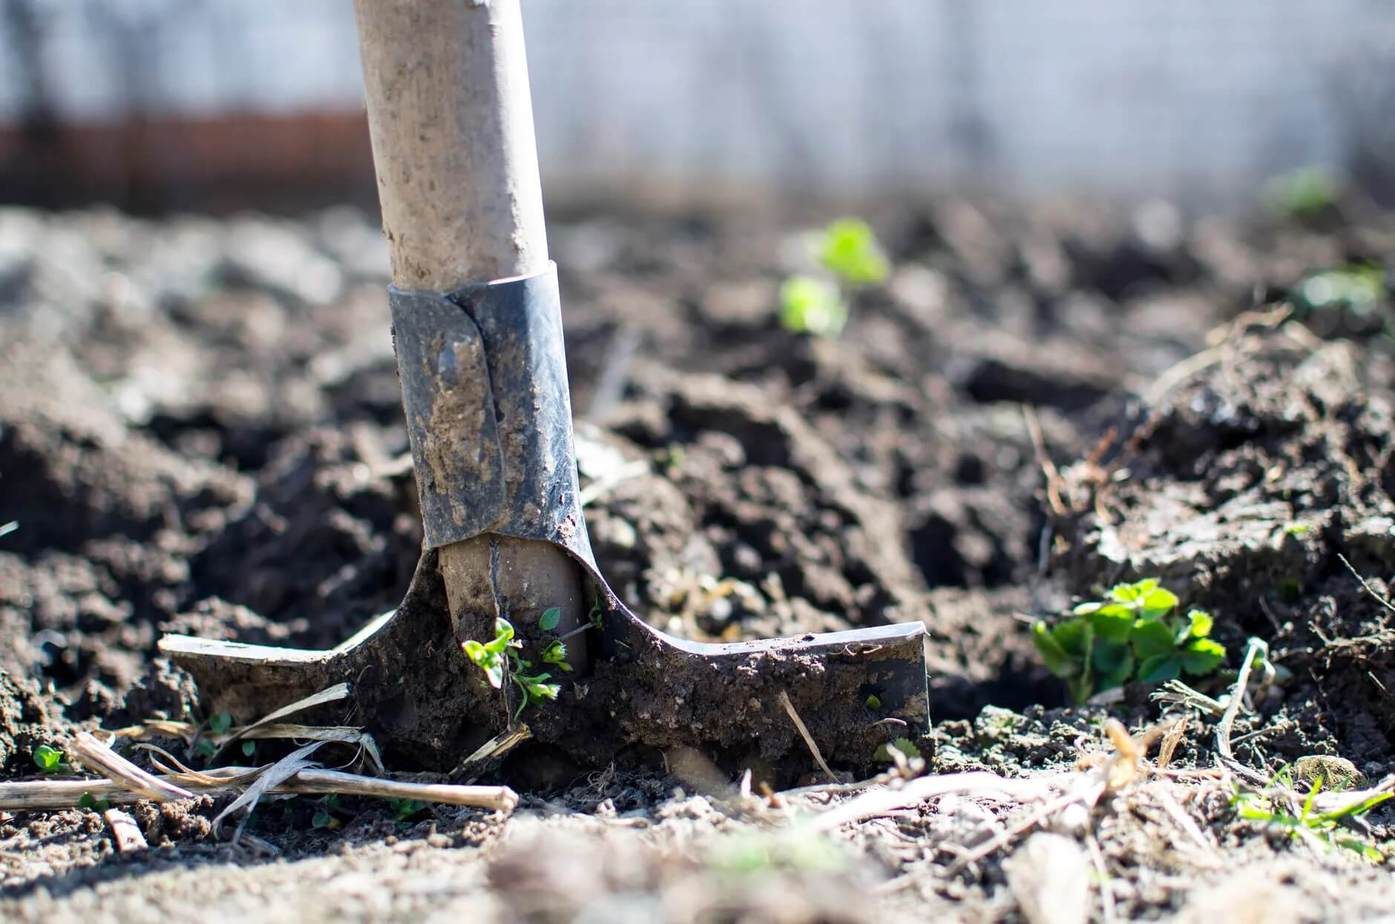 6 Gardening Tools To Keep Your Garden In Tip-Top Shape